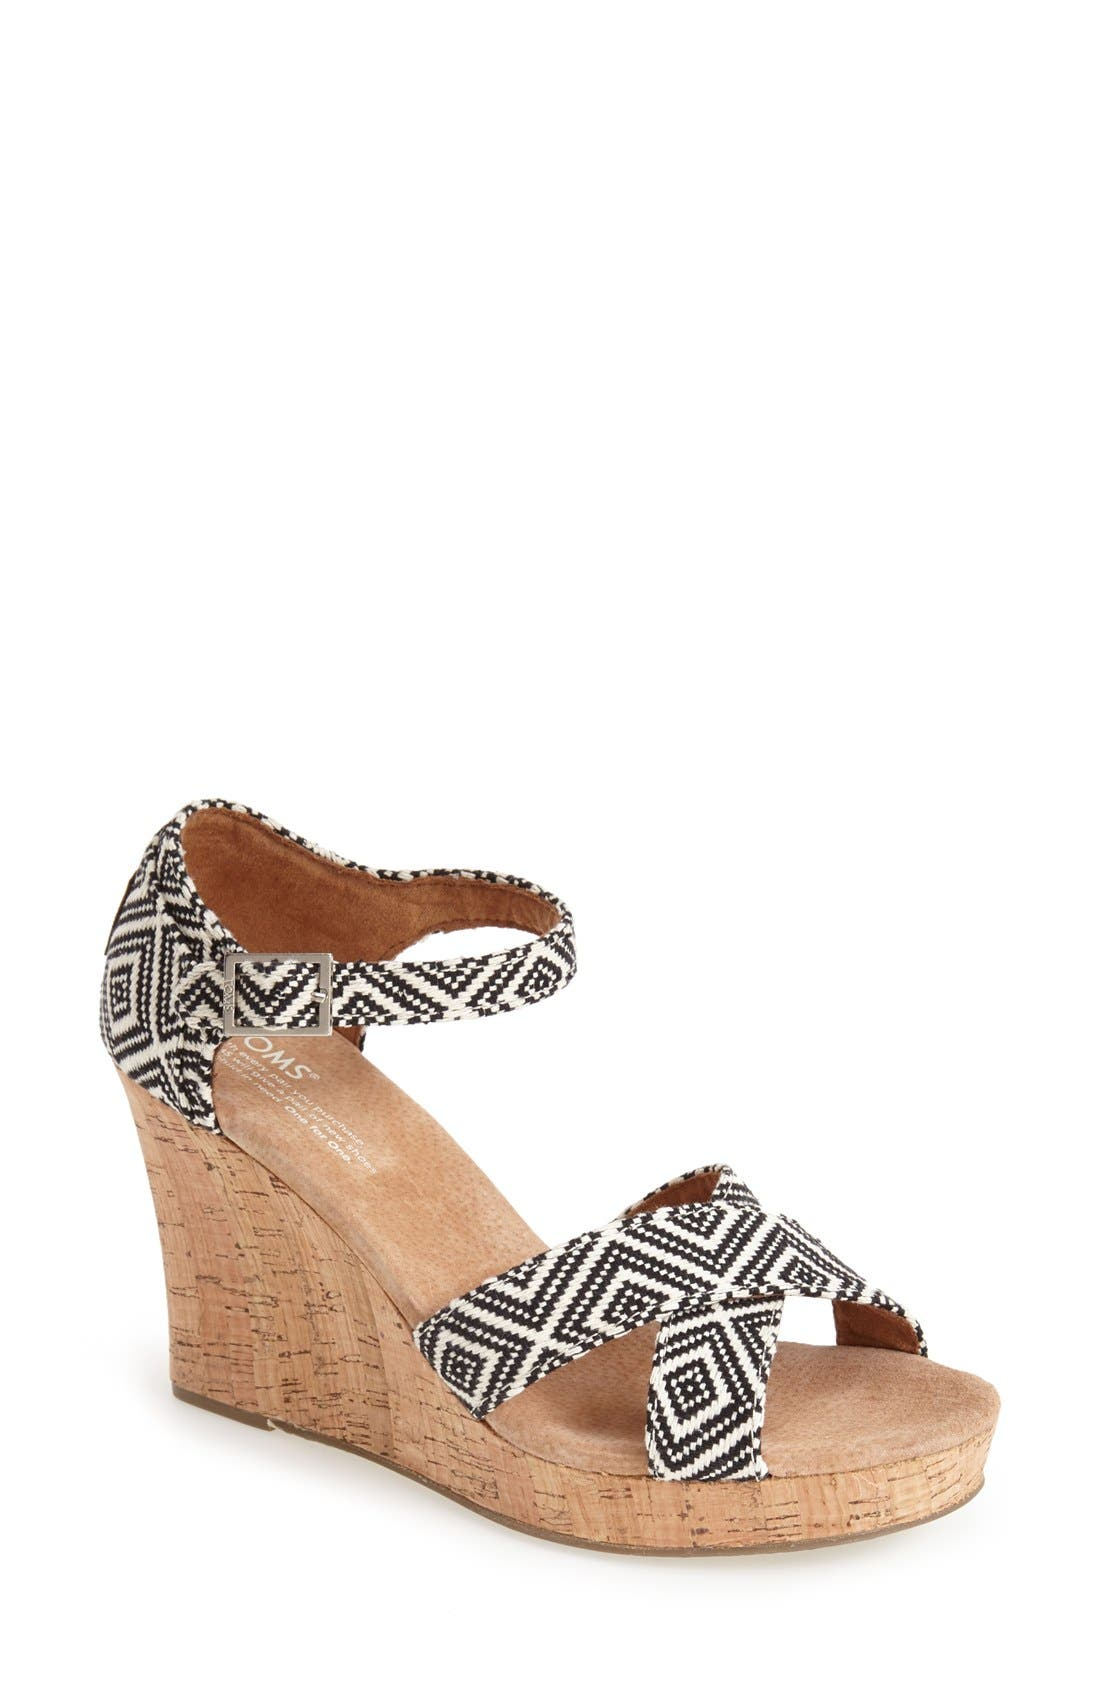 Alternate Image 1 Selected - TOMS Canvas Woven Geometric Print Wedge Sandal (Women)